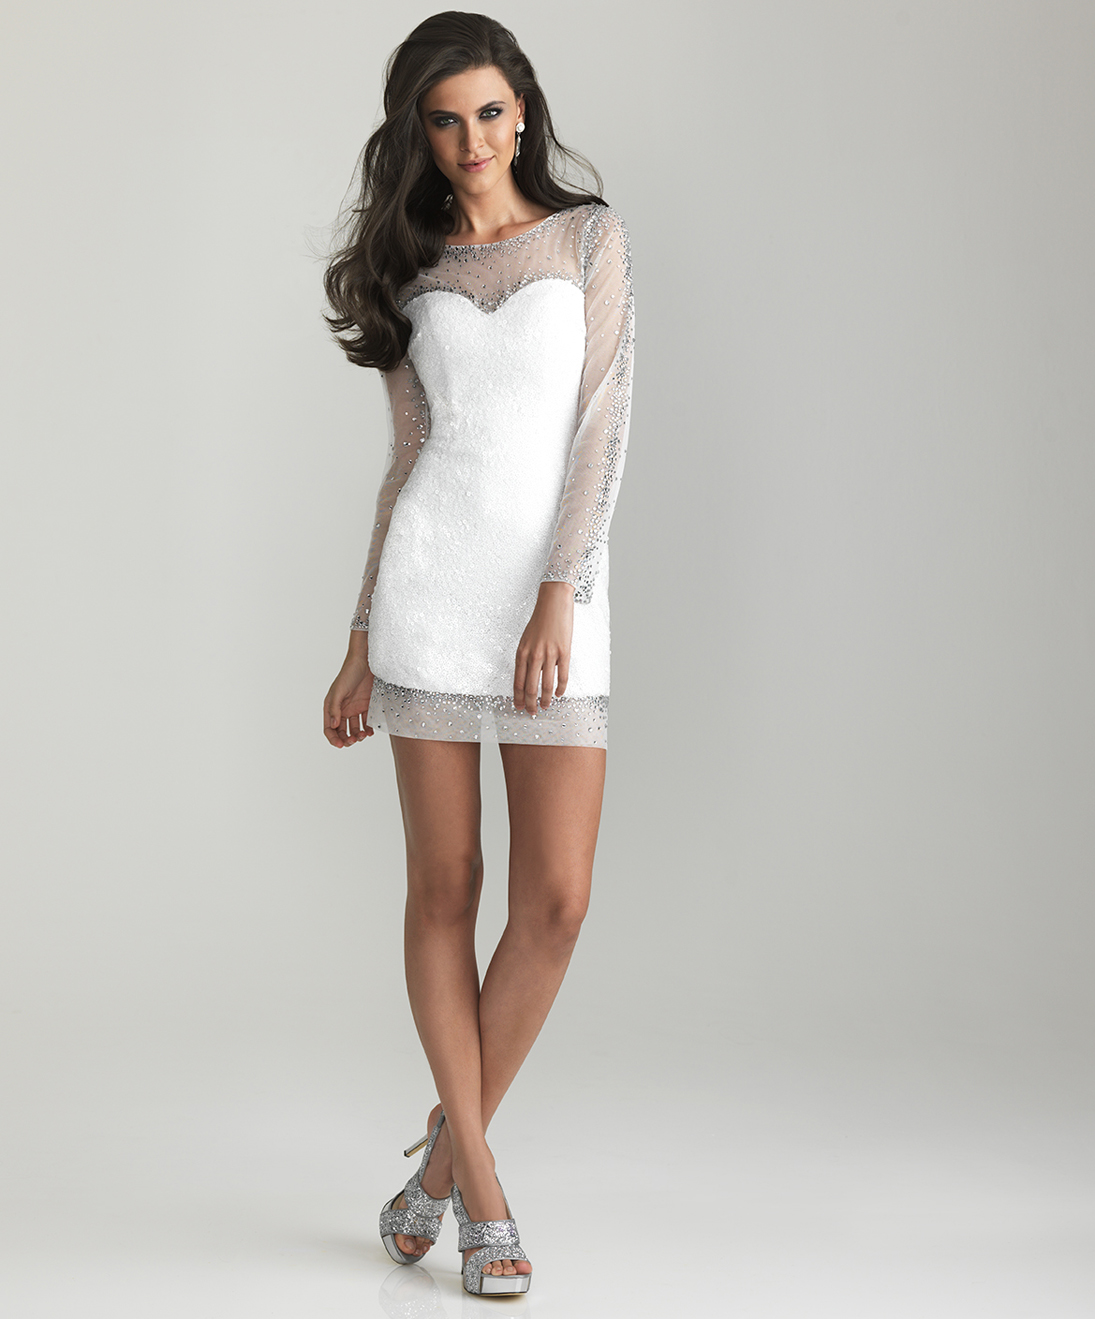 Prom Dresses Long Sleeve Short - Boutique Prom Dresses